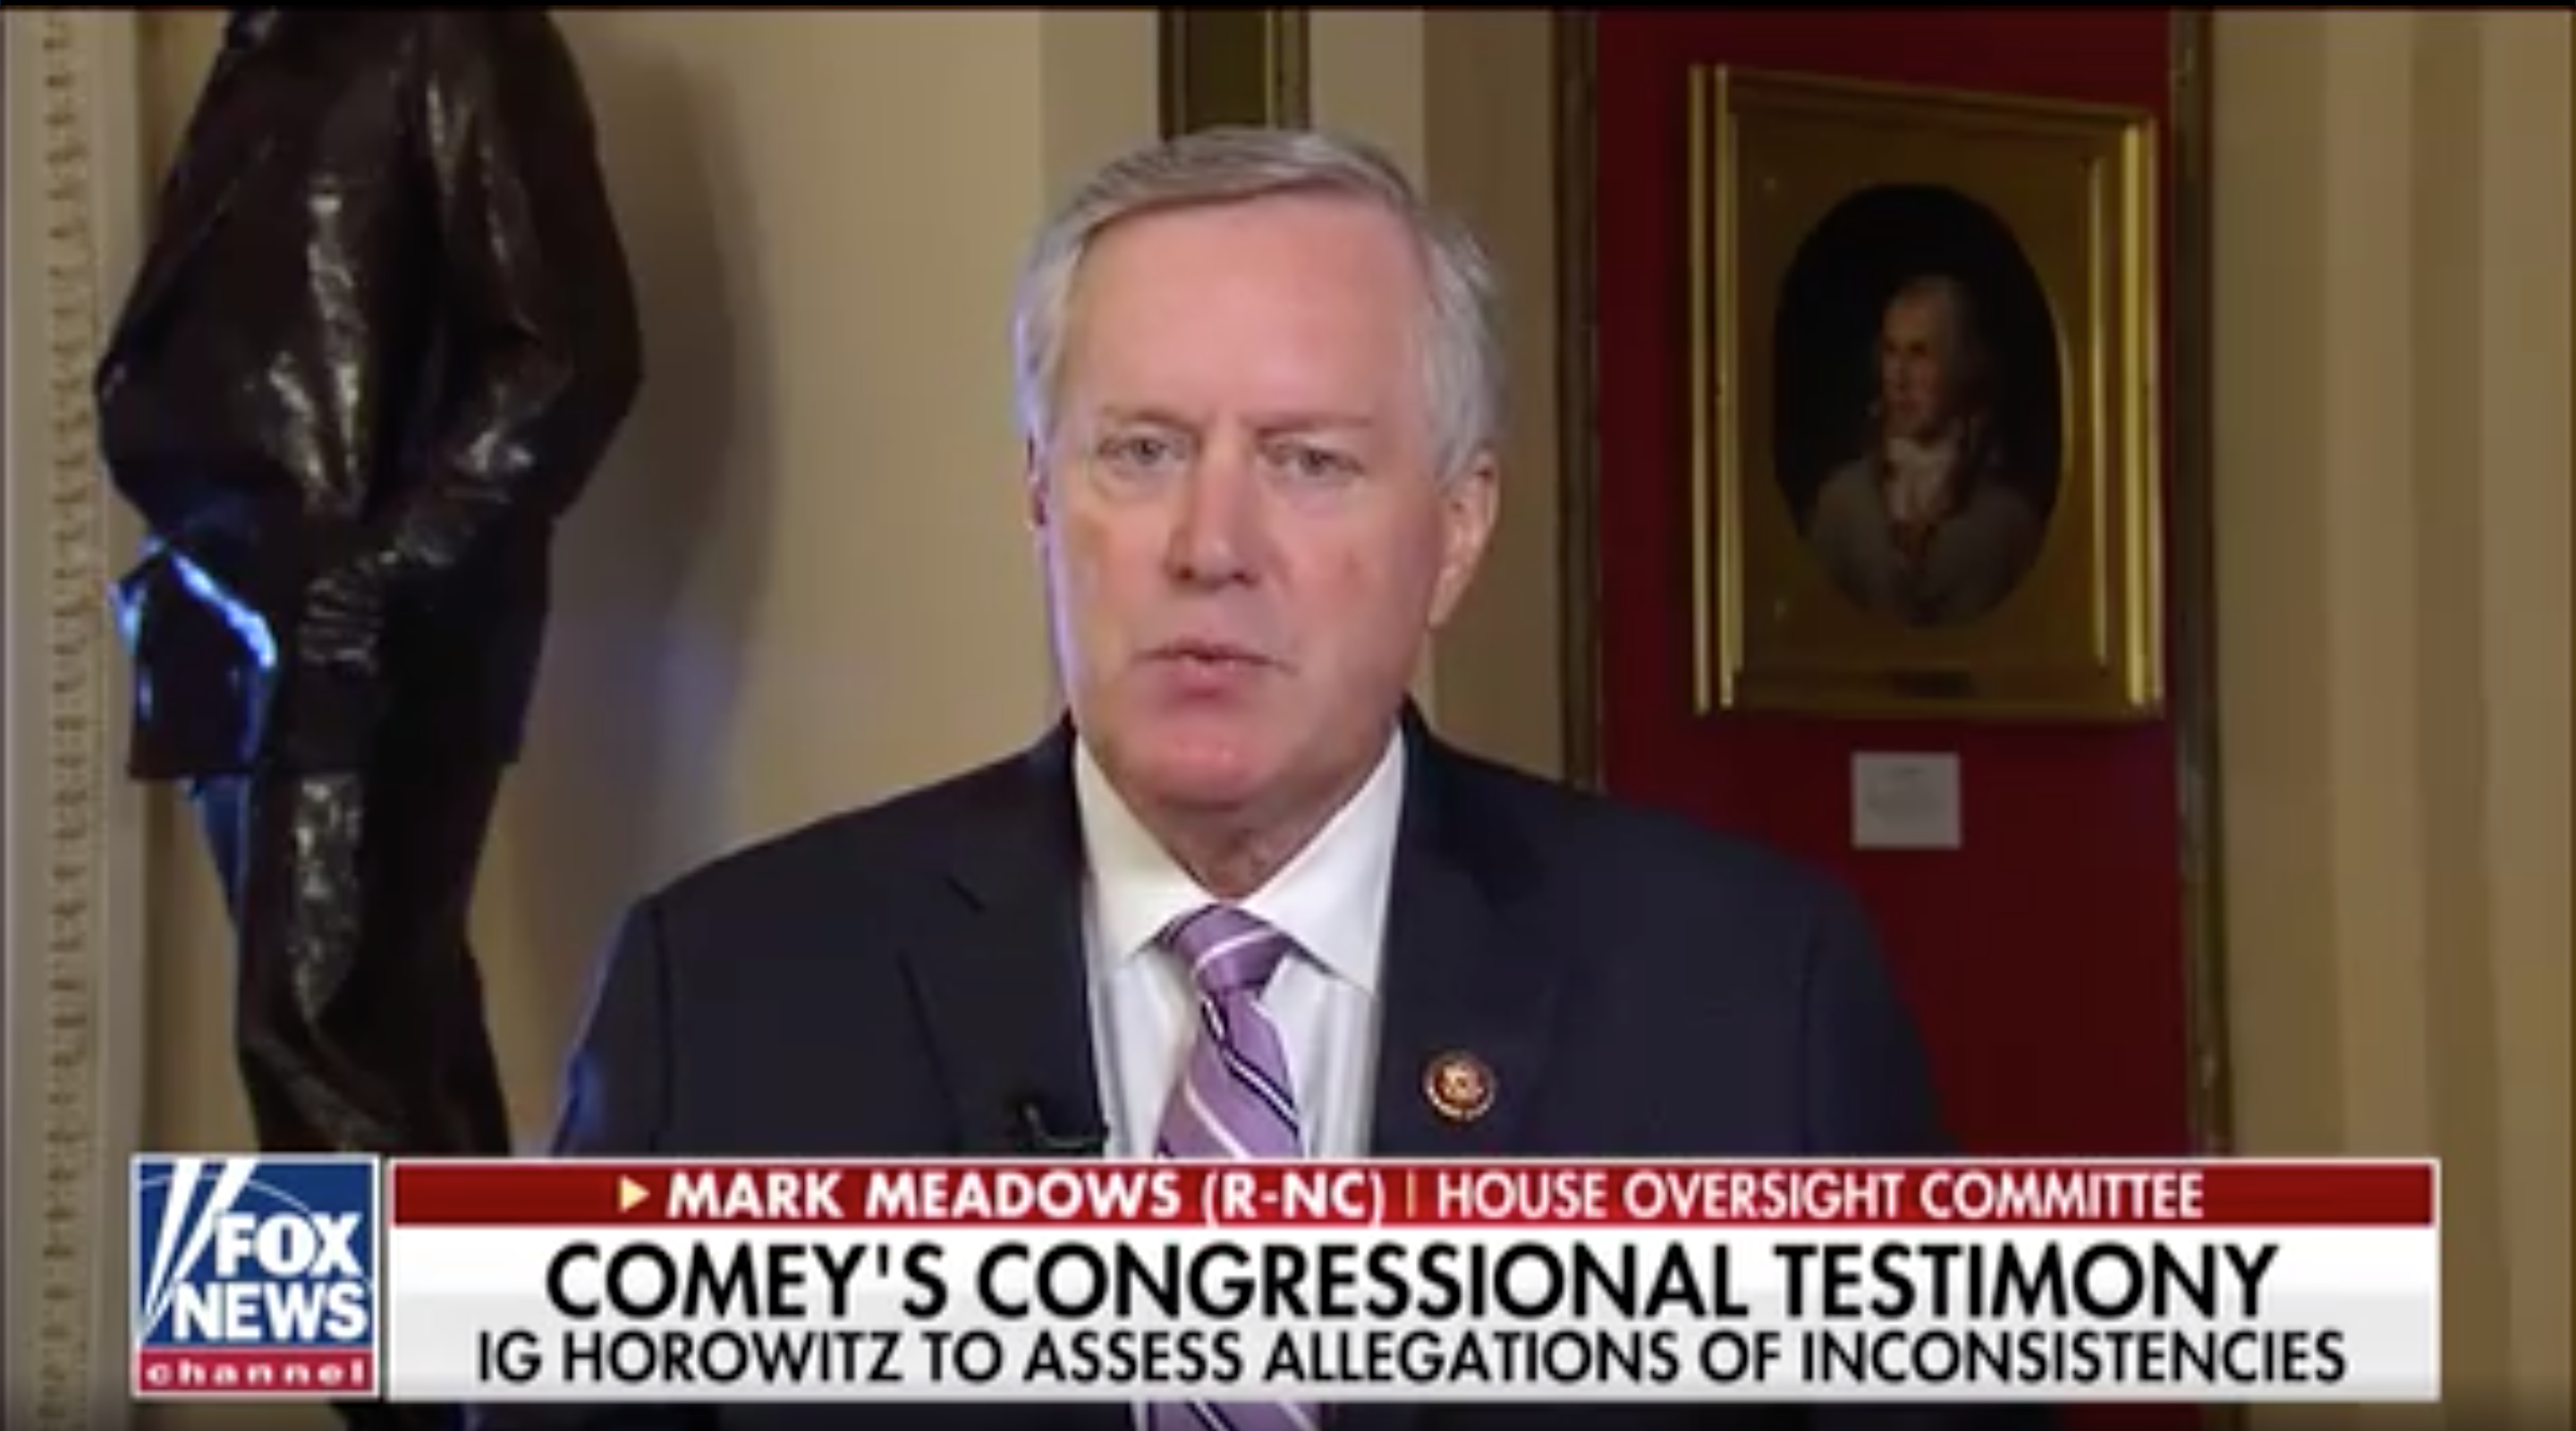 Rep. Meadows on upcoming IG report: 'James Comey's problems are just now starting'